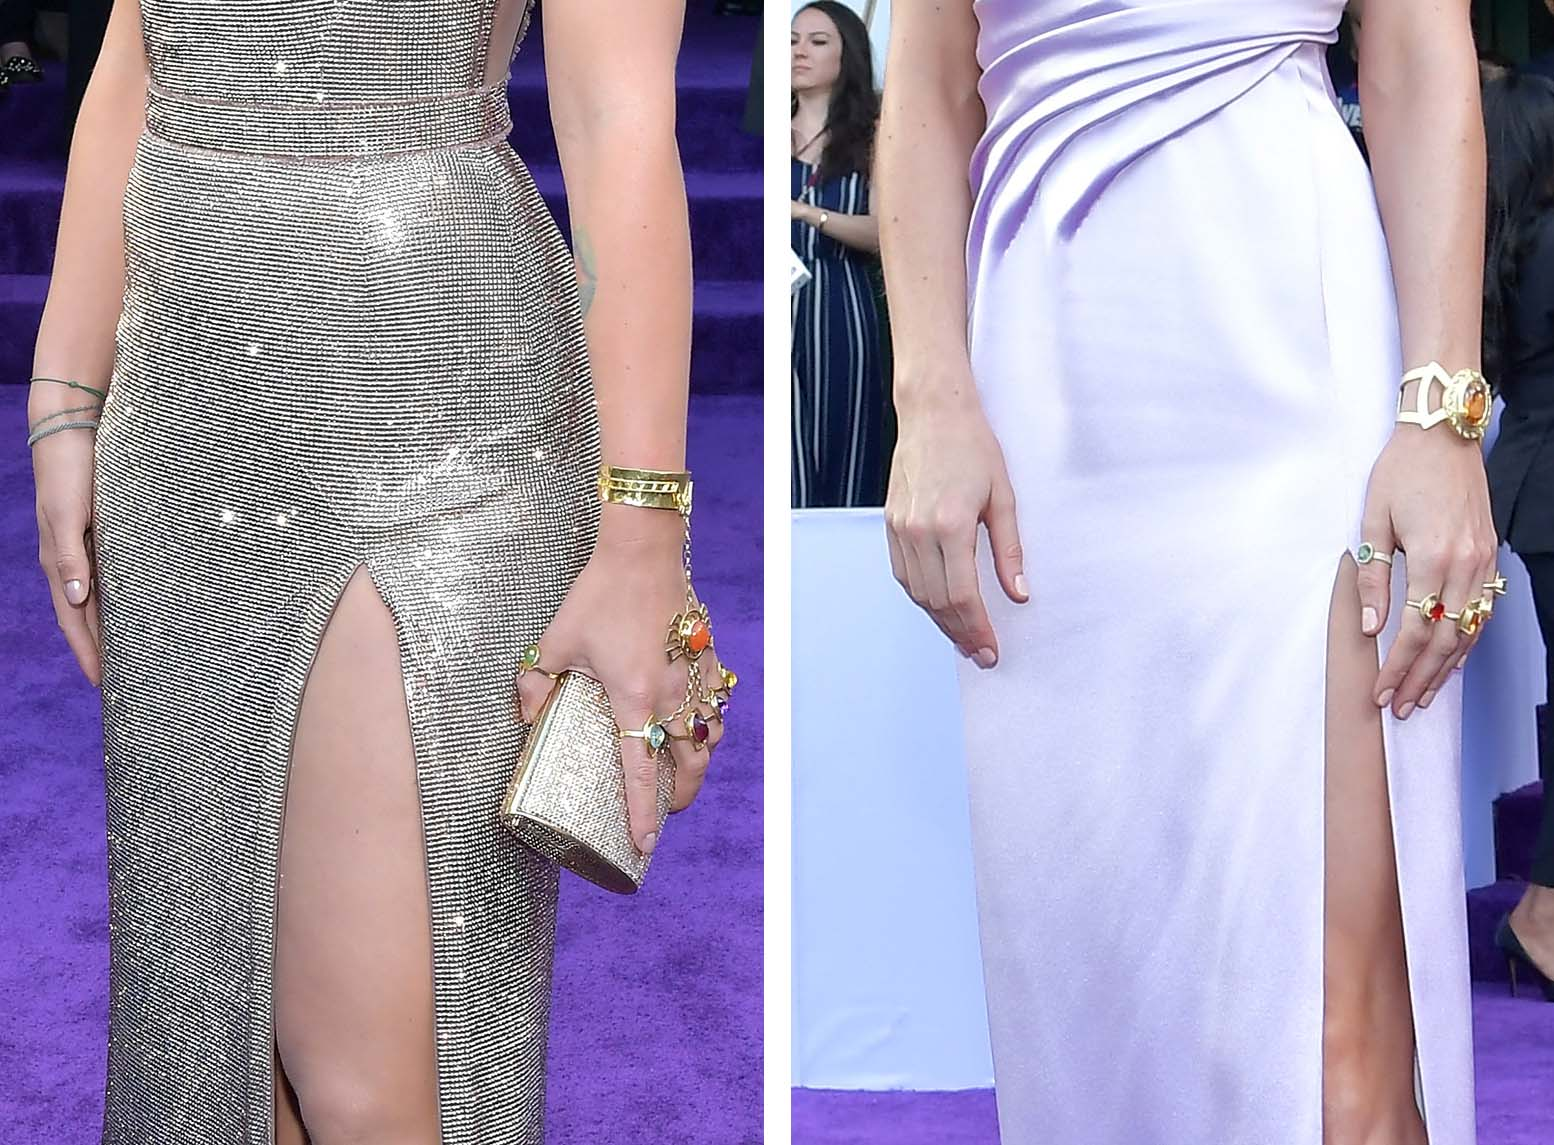 LOS ANGELES, CA - APRIL 22:  In this composite image a comparison has been made between the jewelry (ring detail) of 'infinite stones' worn by Scarlett Johansson (L) and Brie Larson at the world premiere of Walt Disney Studios Motion Pictures